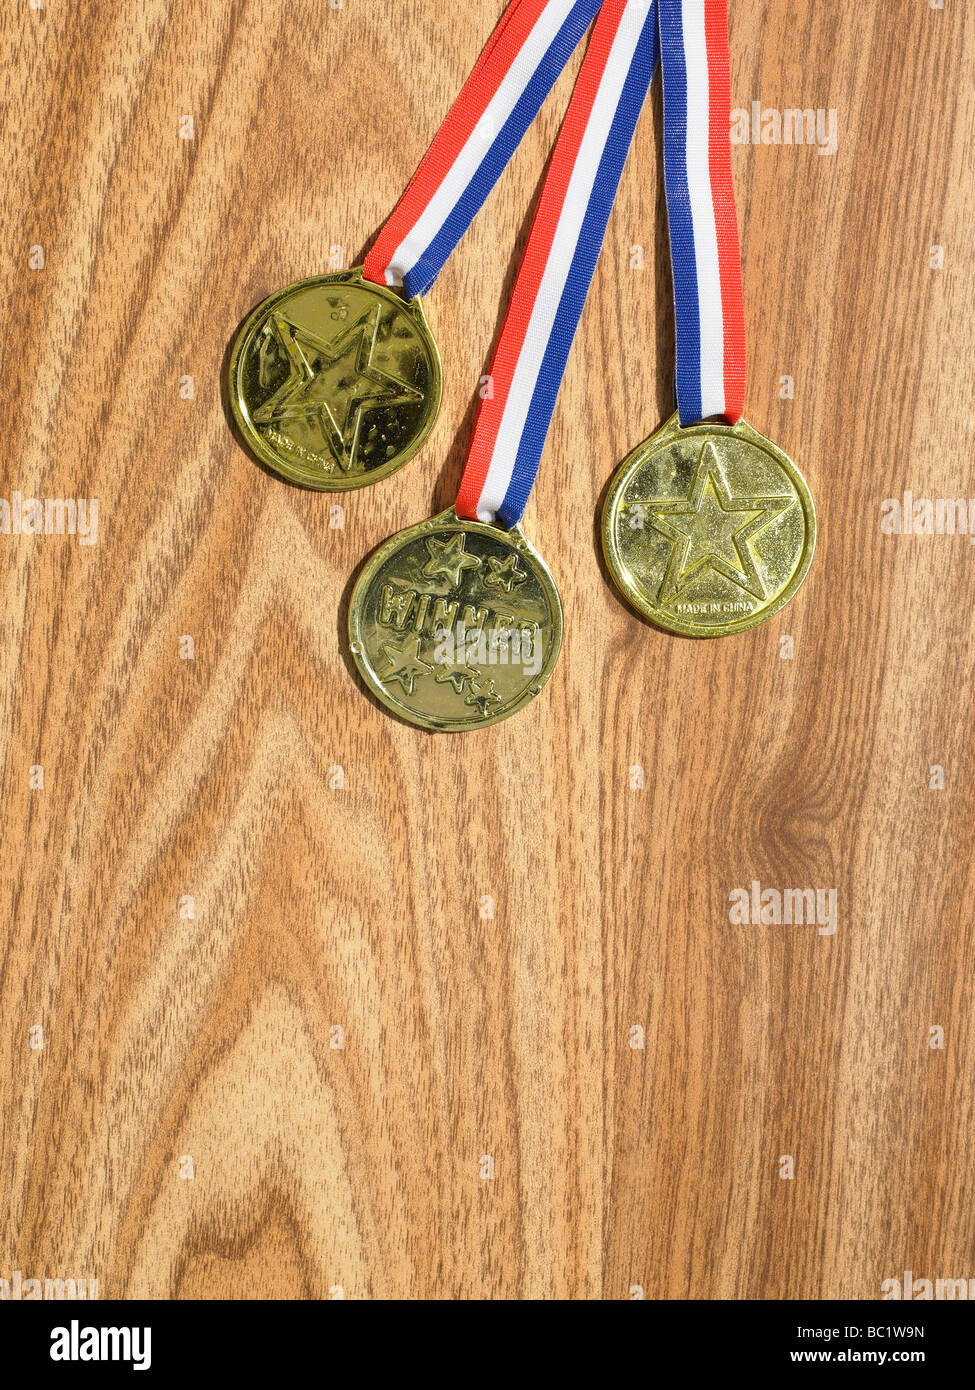 fake medals - Stock Image